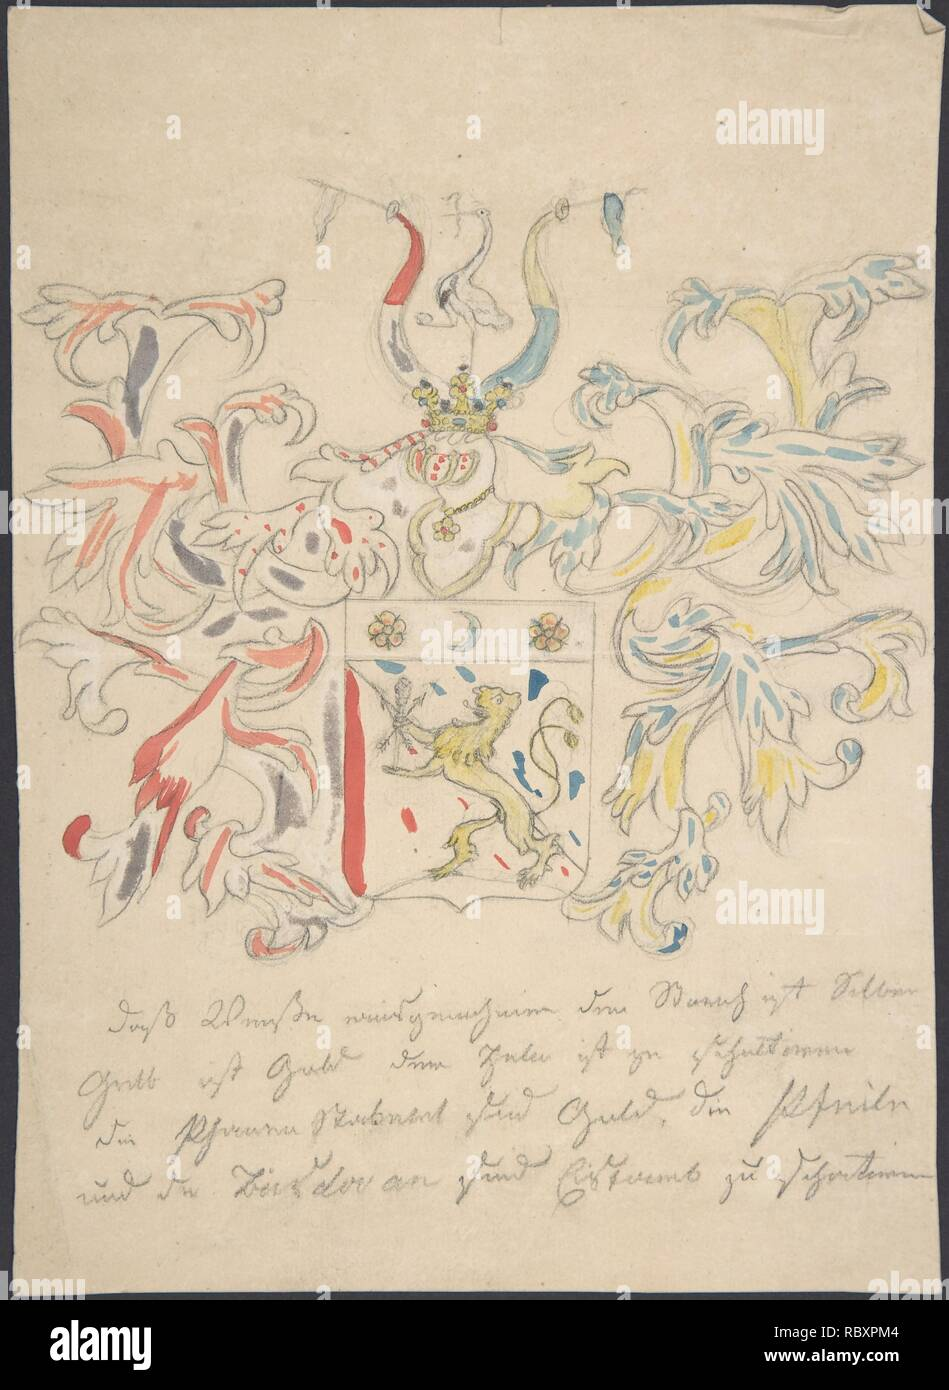 http://www.metmuseum.org/art/collection/search/383349 Artist: Anonymous, 18th century, Design for coat of arms, 18th century, Graphite and watercolor, sheet: 10 3/16 x 7 5/16 in. (25.9 x 18.6 cm). The Metropolitan Museum of Art, New York. Gift of Janos Scholz, 1961 (61.636.32) - Stock Image